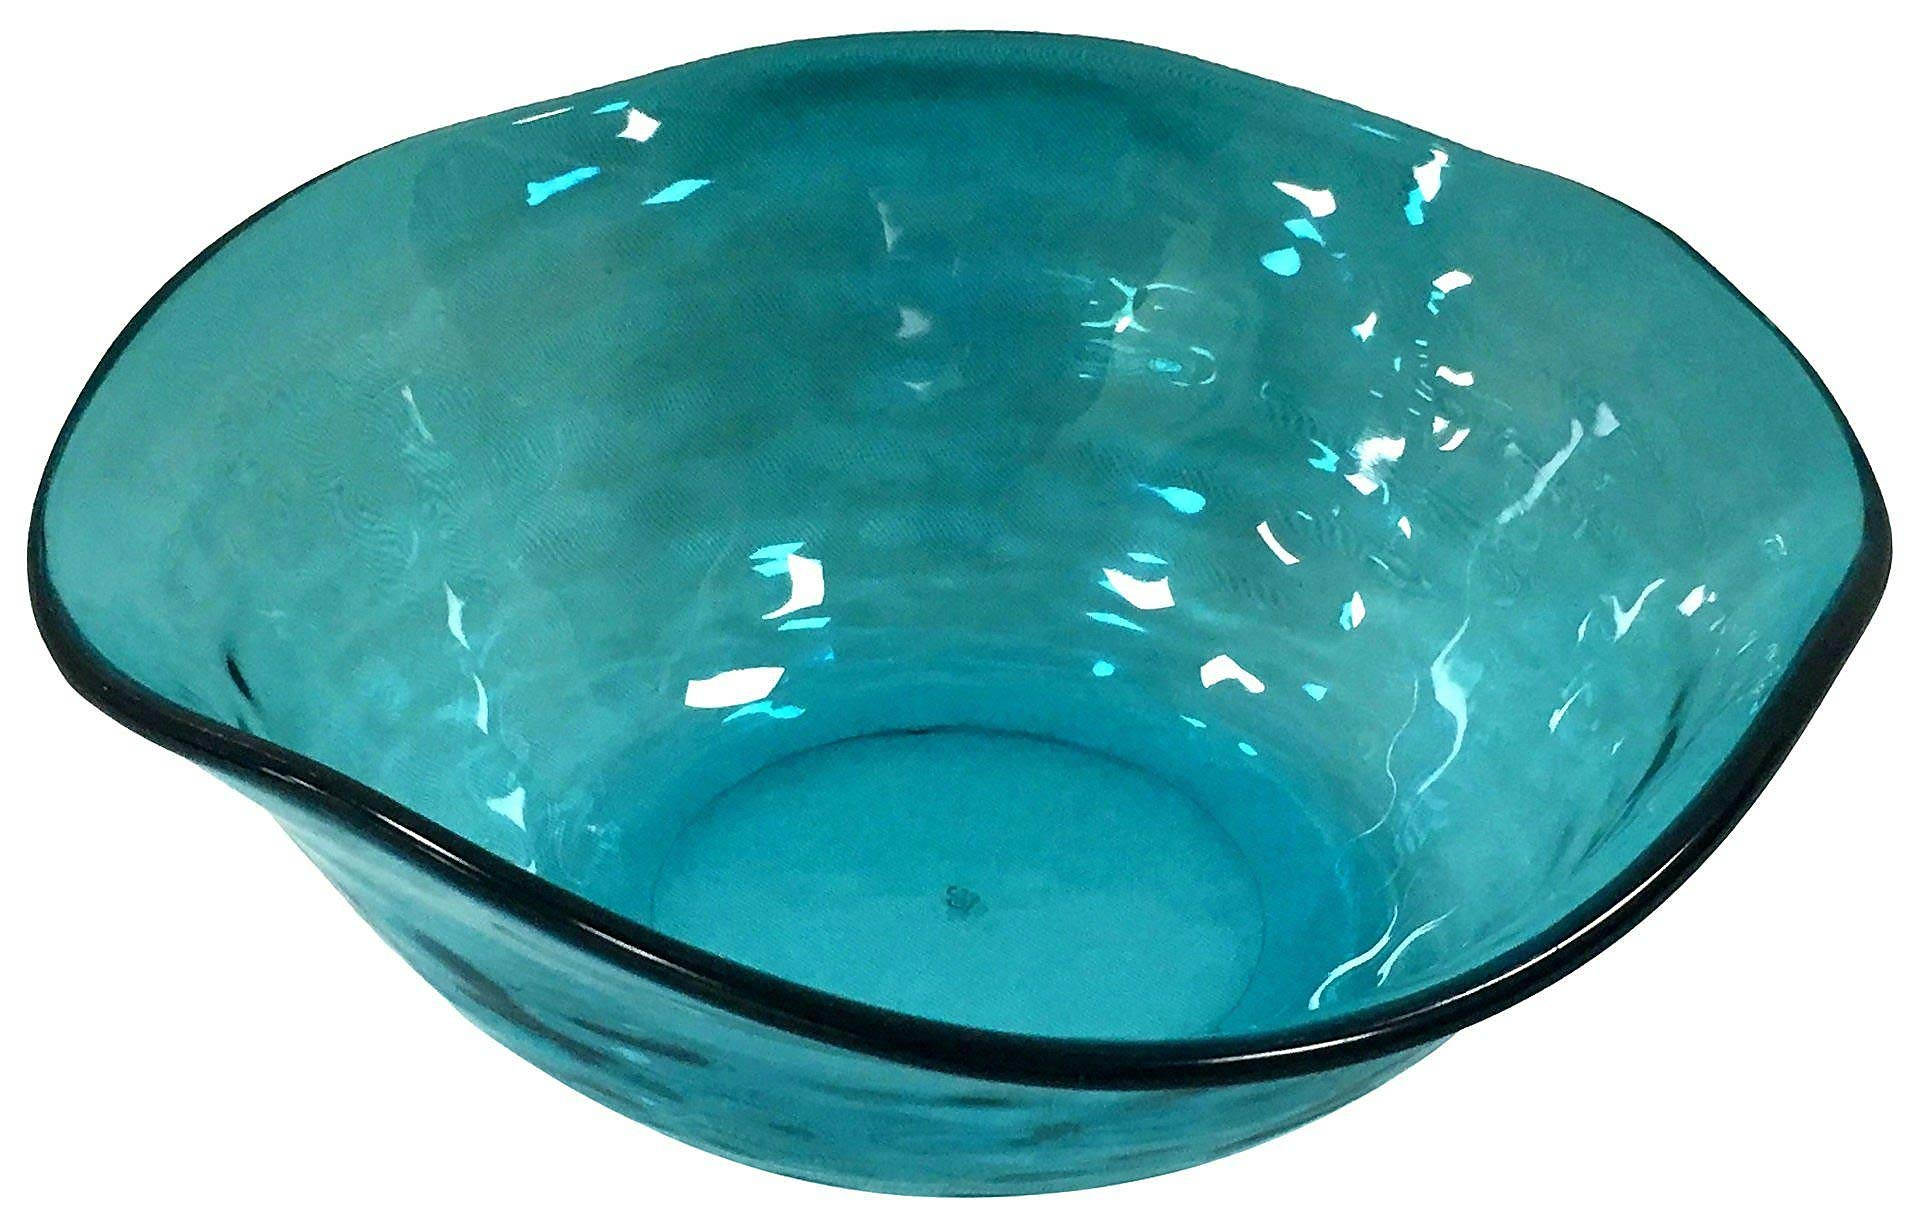 Coastal Home Embossed Shells Small Wavy Bowl One Size Turquoise